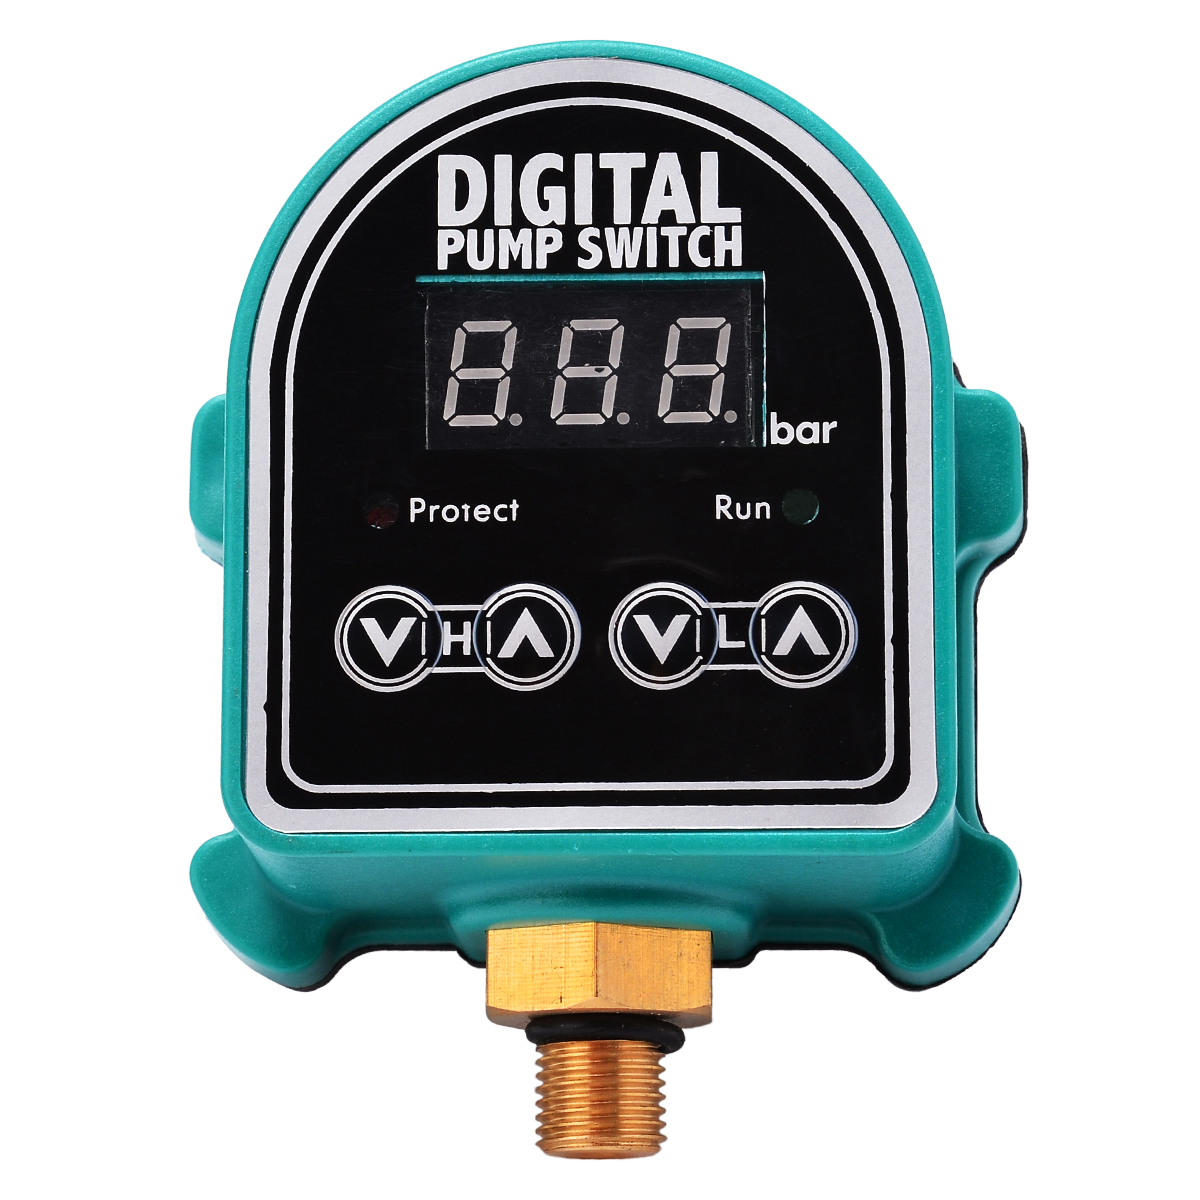 220V Household Digital Water Pressure Switch Digital Display Eletronic Pressure Controller for Water Pump Accessories